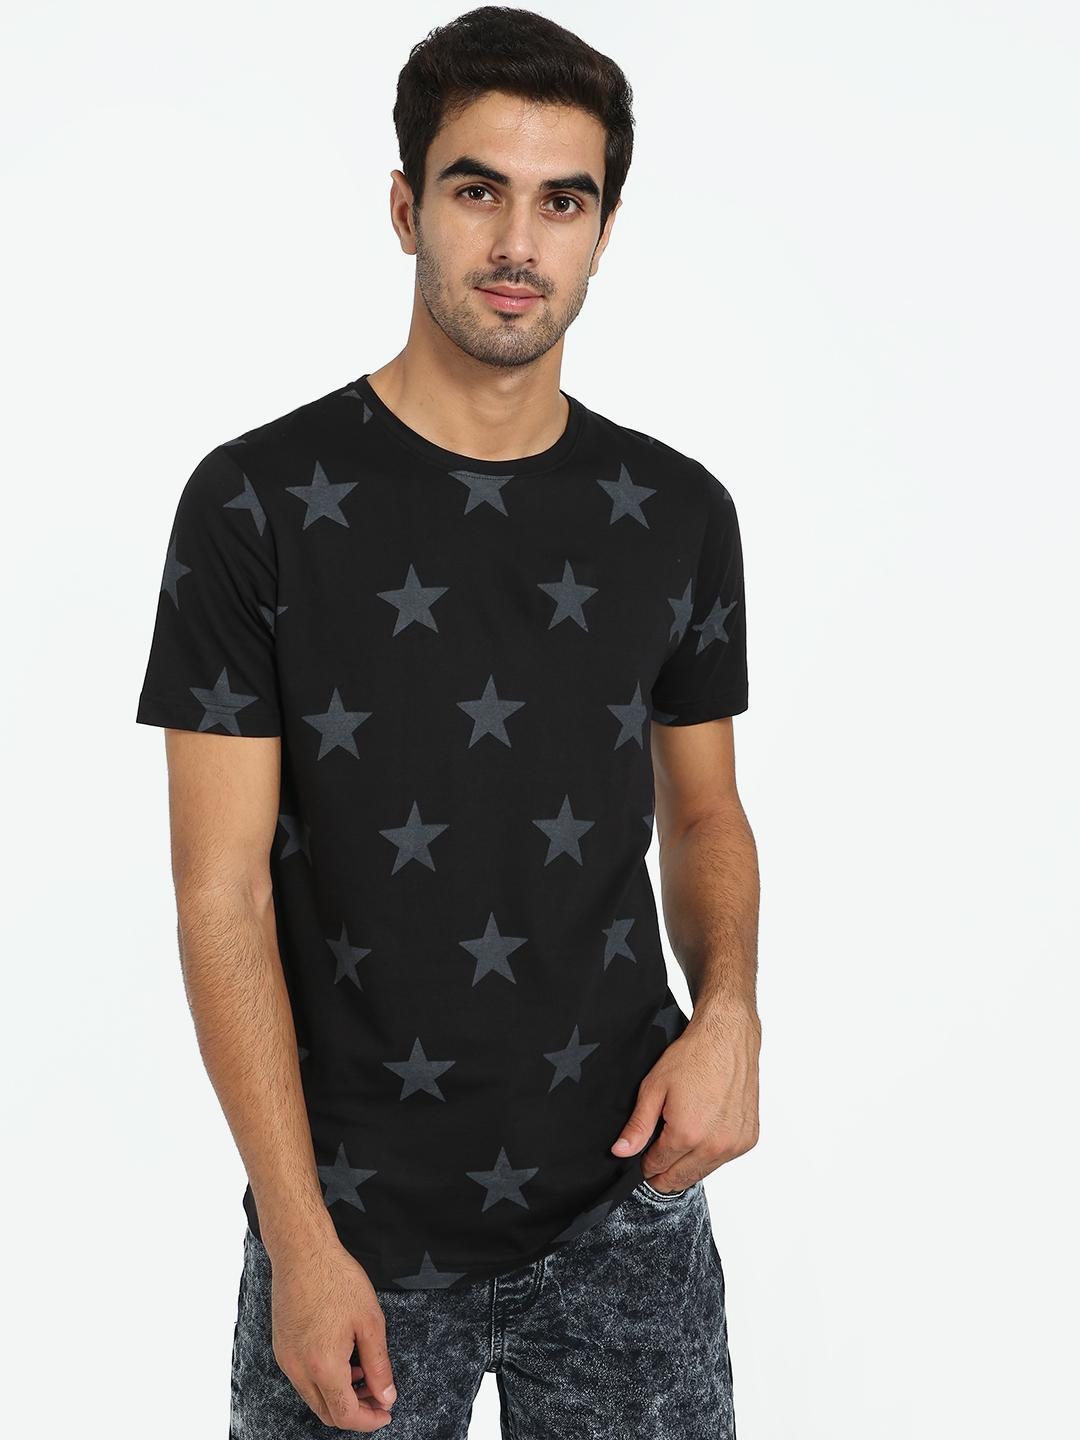 Kultprit Black All Over Star Print T-Shirt 1